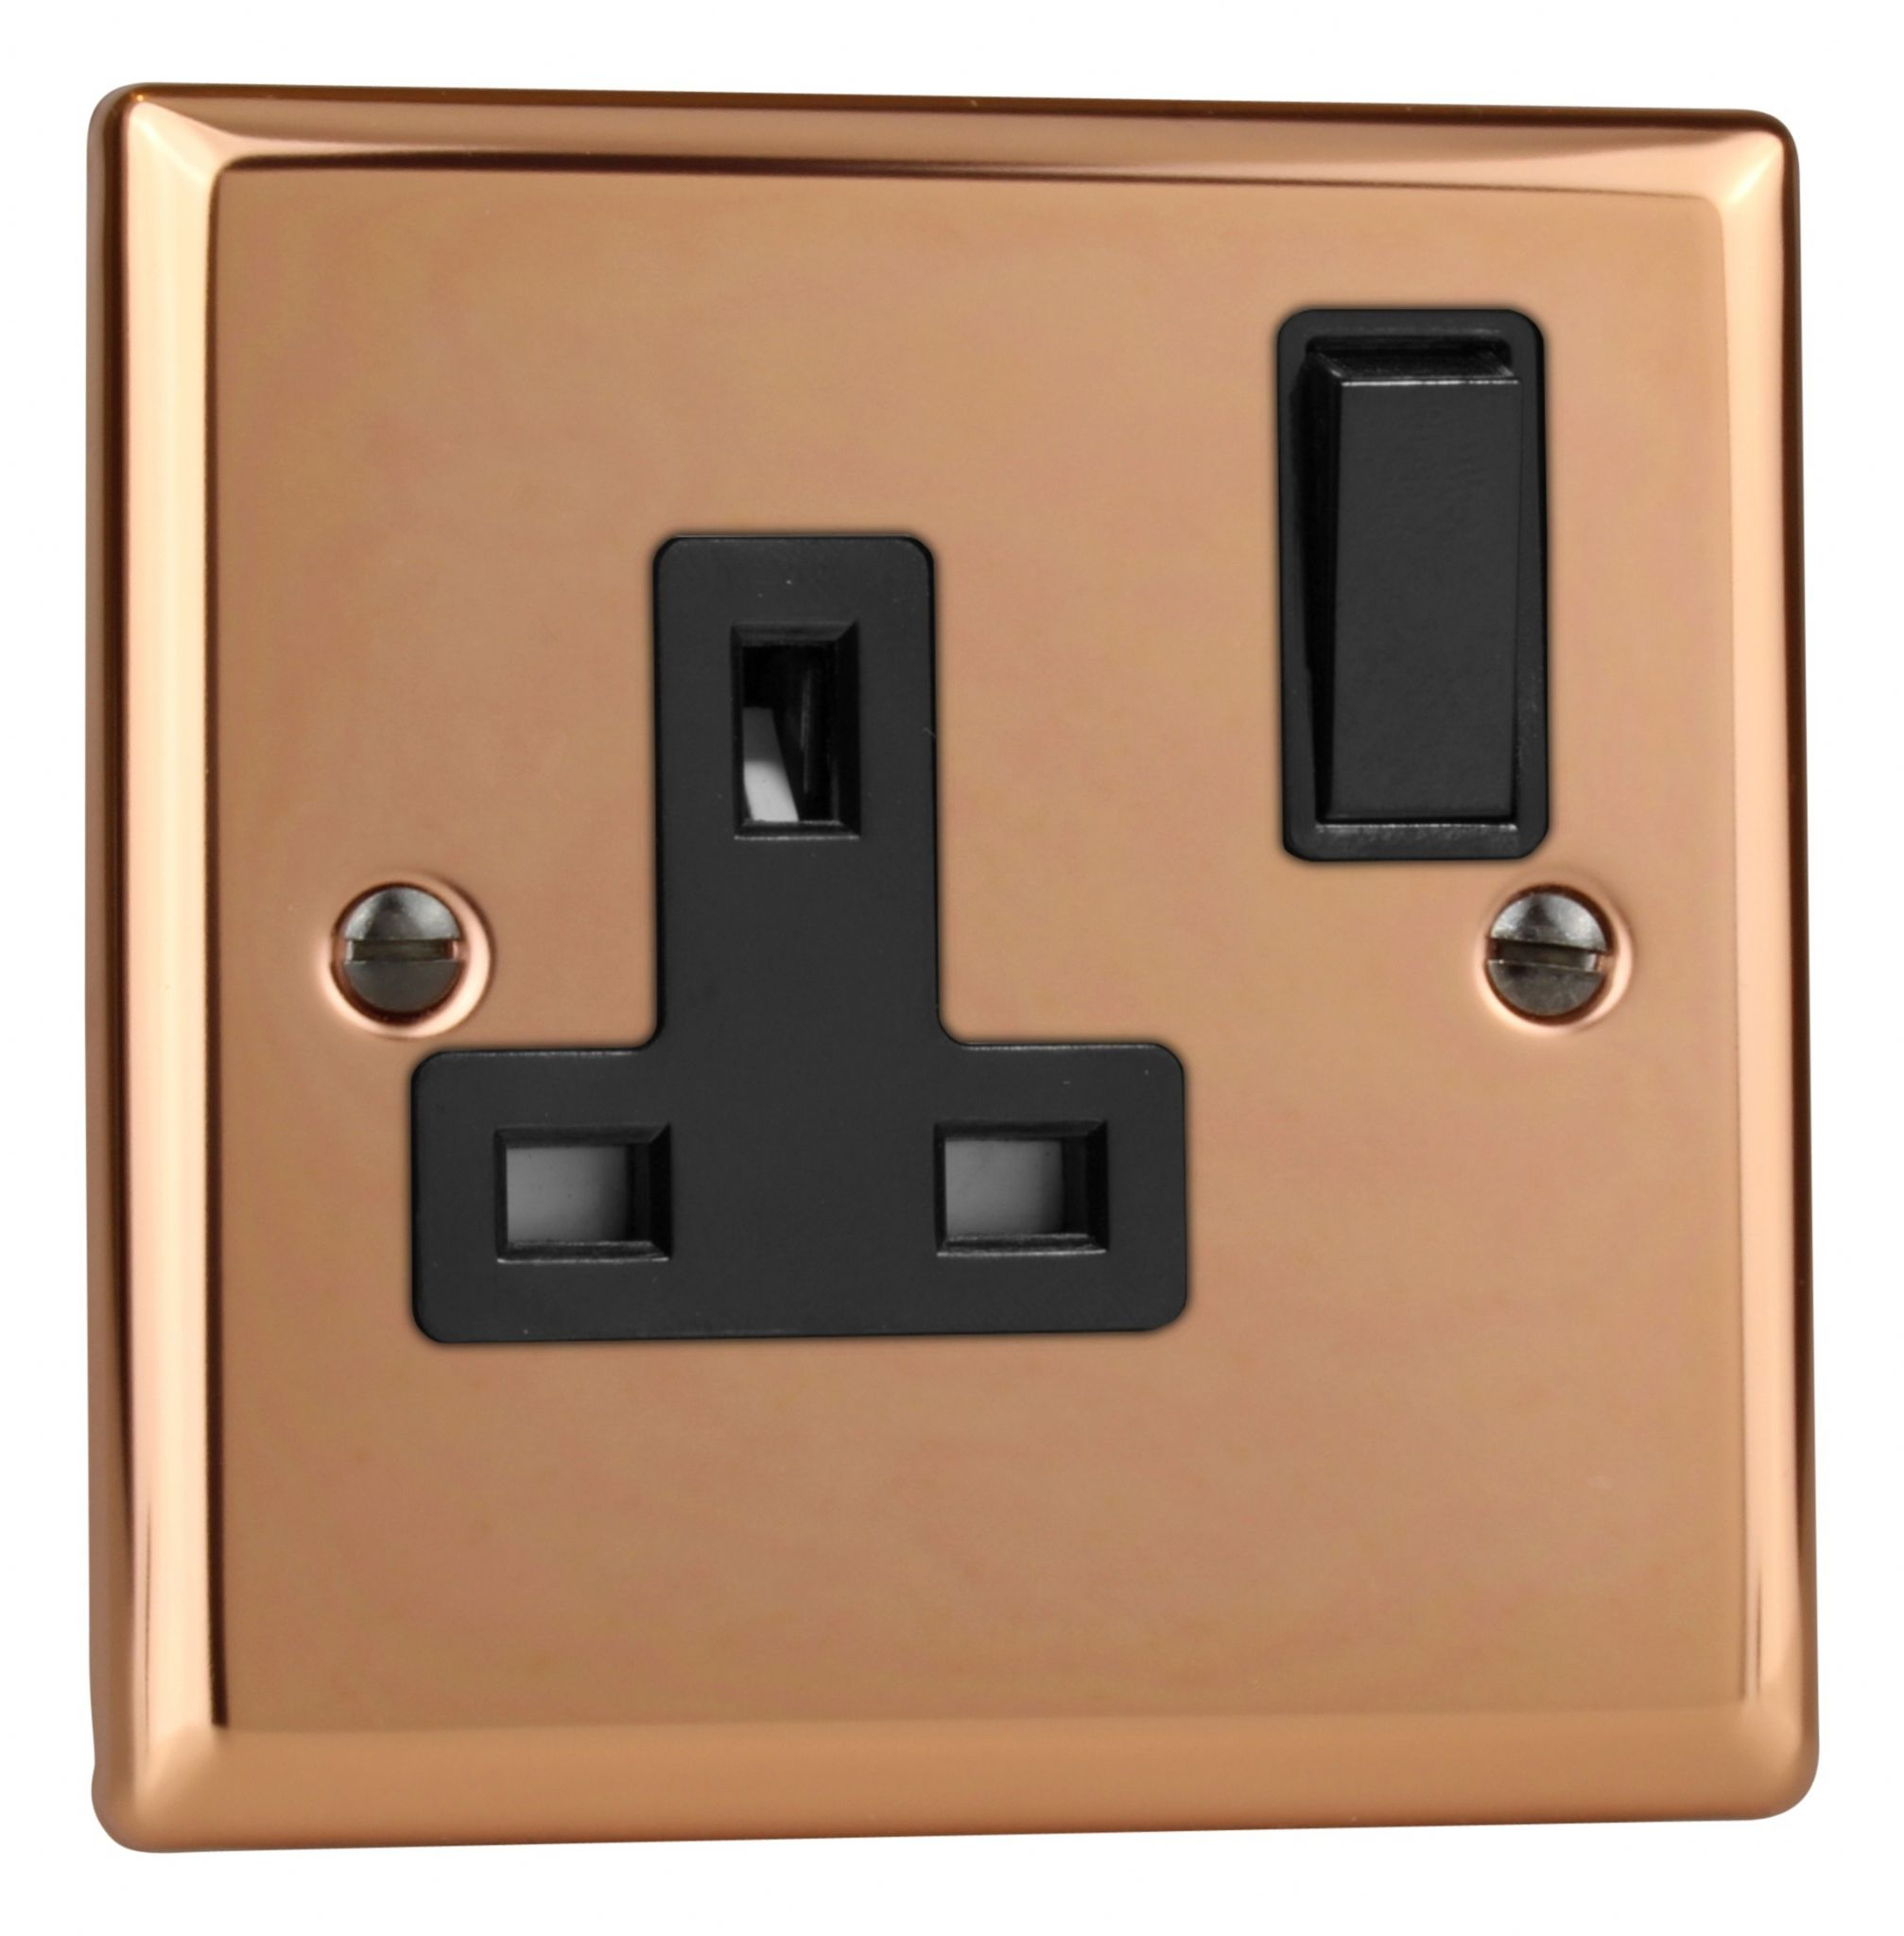 Varilight XY4B.CU Urban Polished Copper 1 Gang 13A Single Switched Plug Socket